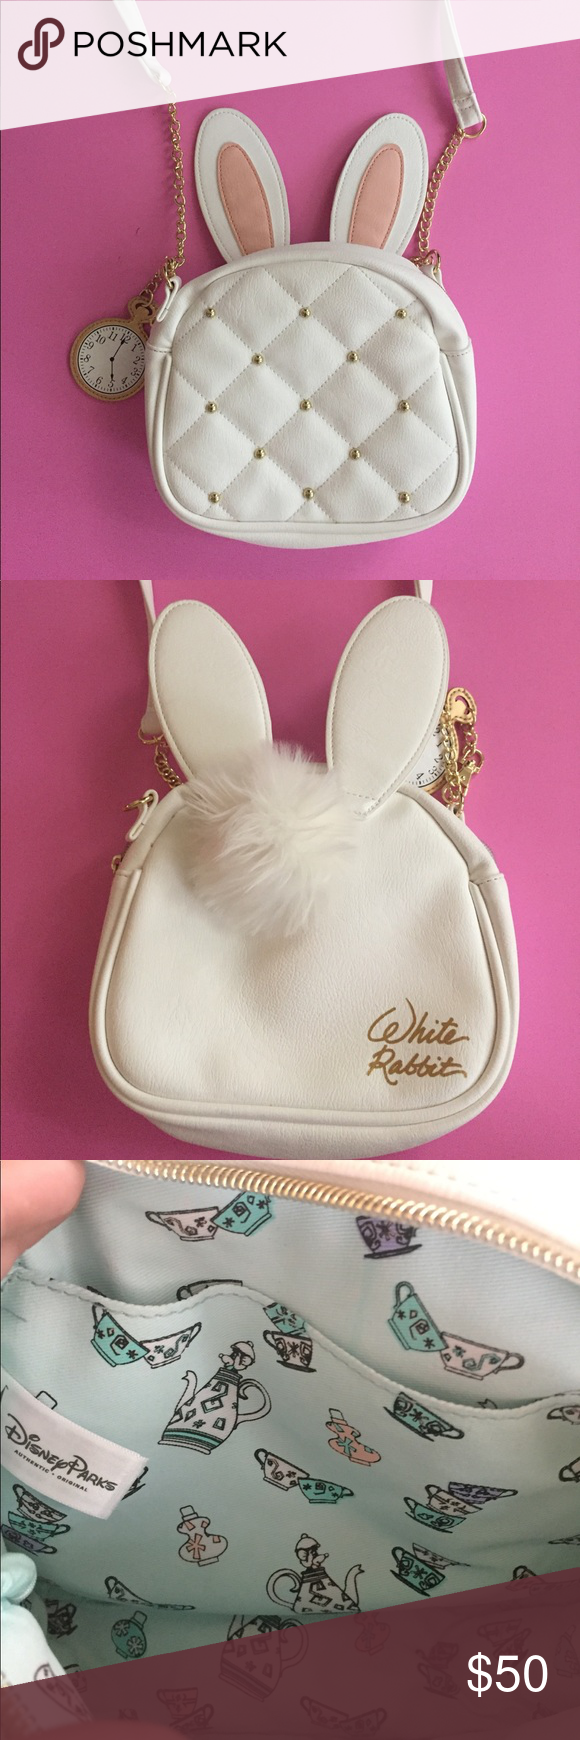 Disney Purse White Rabbit Alice In Wonderland Themed Purchased From The Dress At Springs Has A Cute Bunny Tail On Back